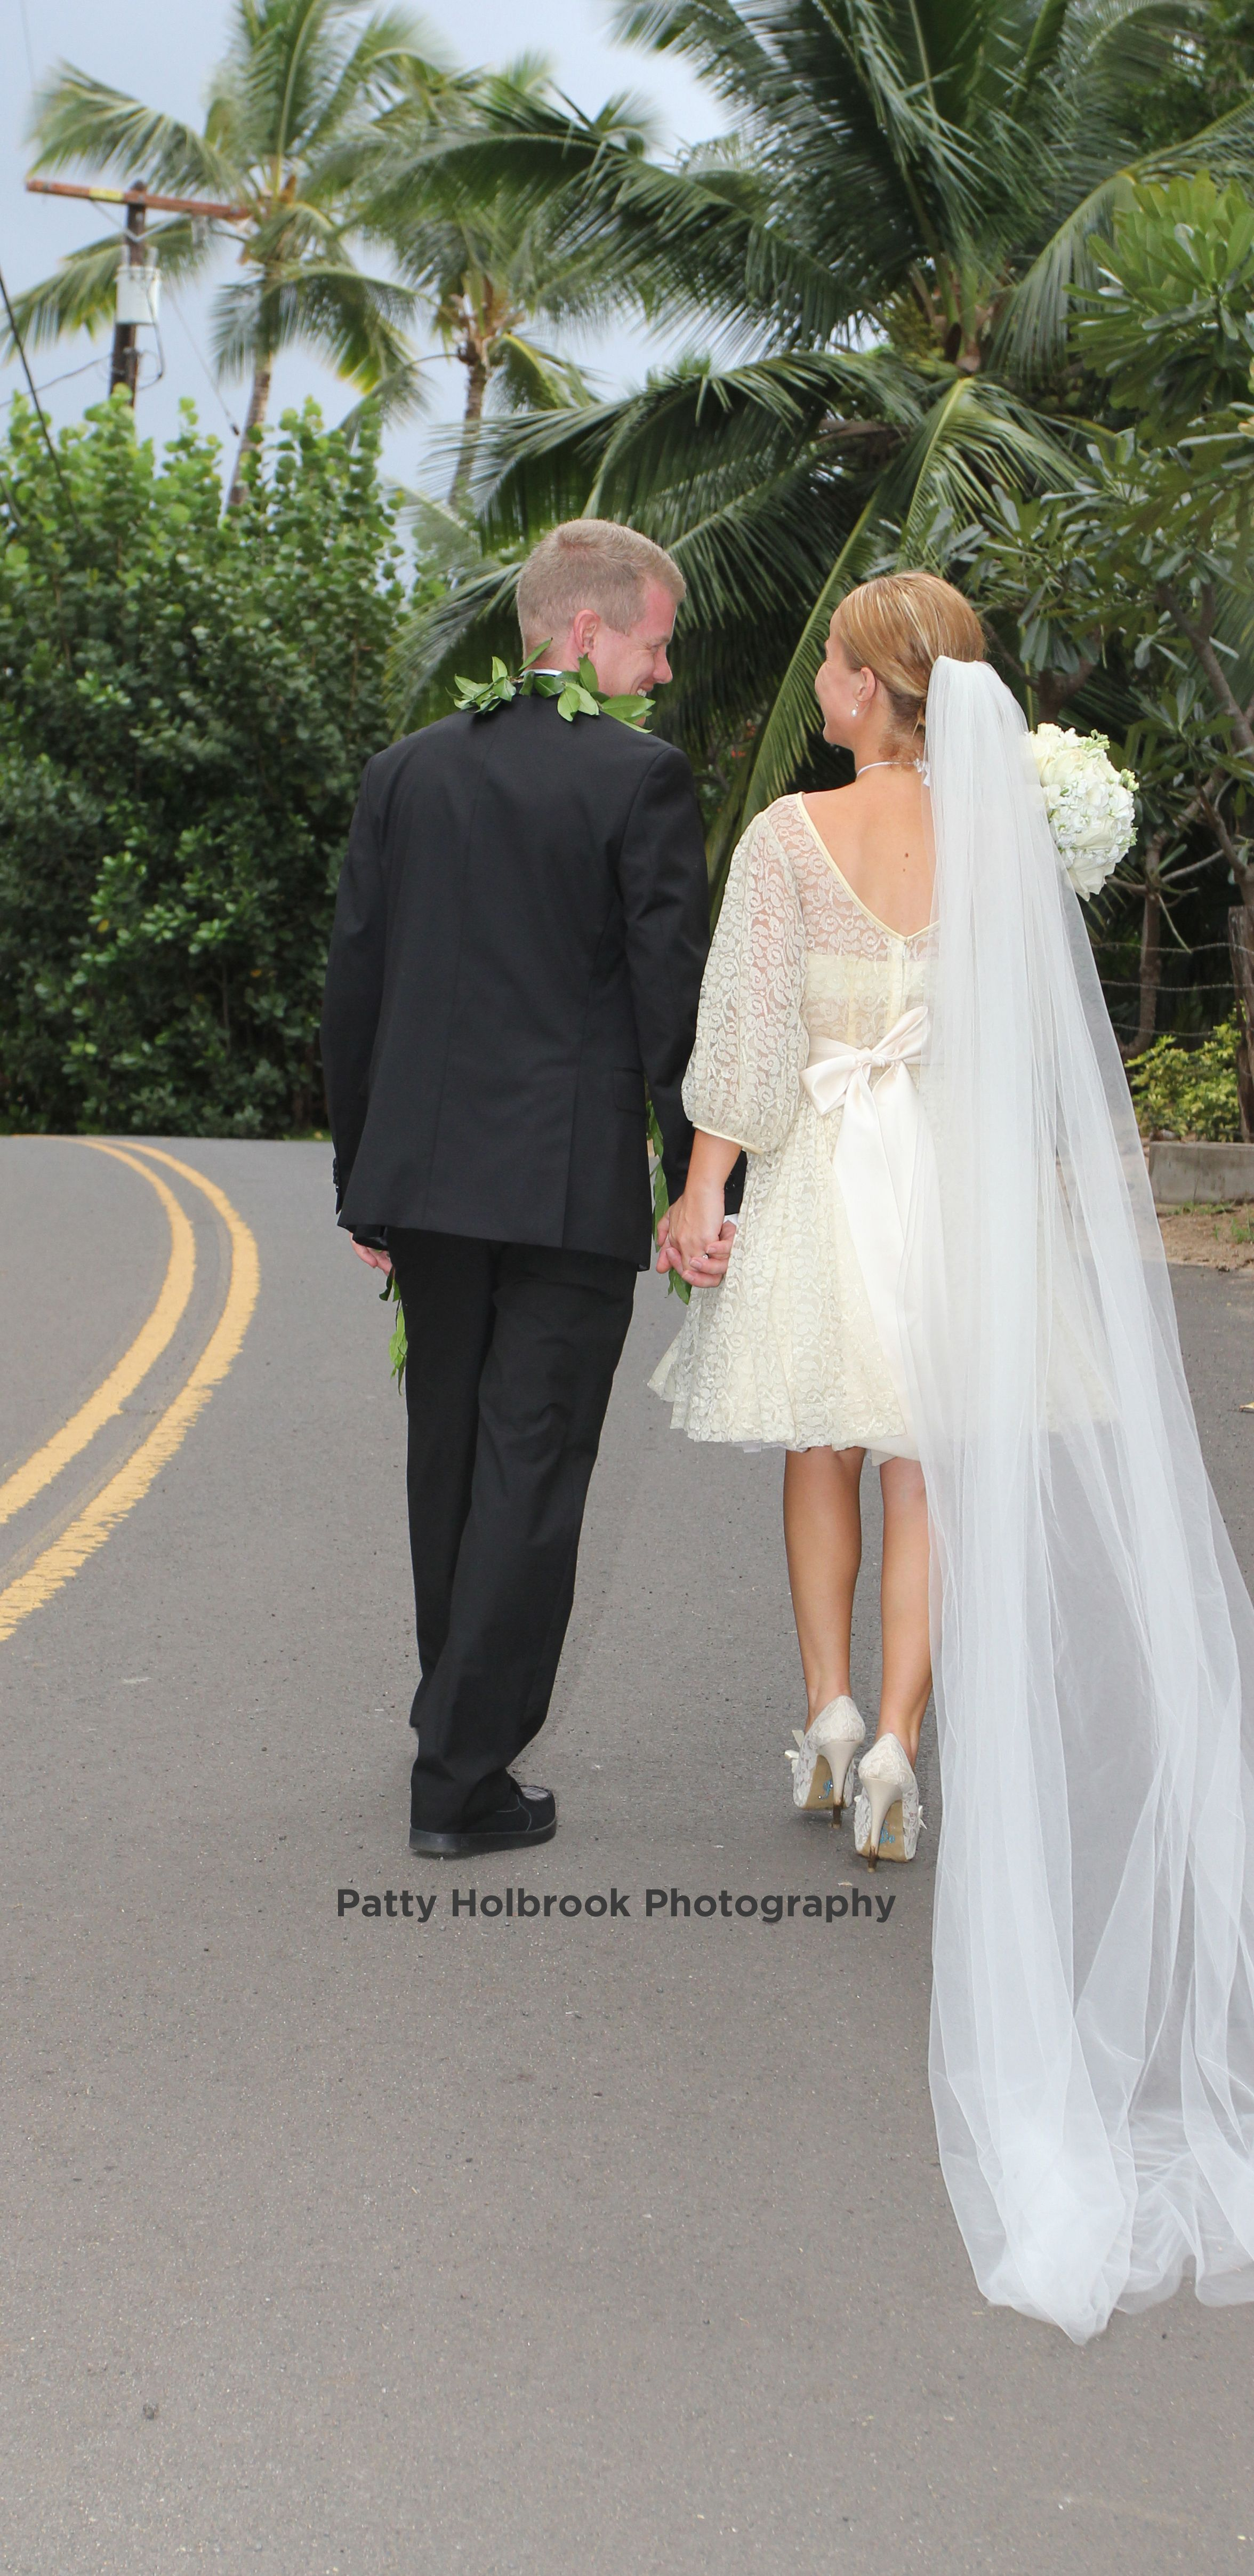 Bride And Groom Walking Hand In Hand Must Have Wedding Picture Black Suit And Maile Lei Country Bridesmaid Dresses Short Wedding Dress Long Wedding Dresses [ 4830 x 2352 Pixel ]